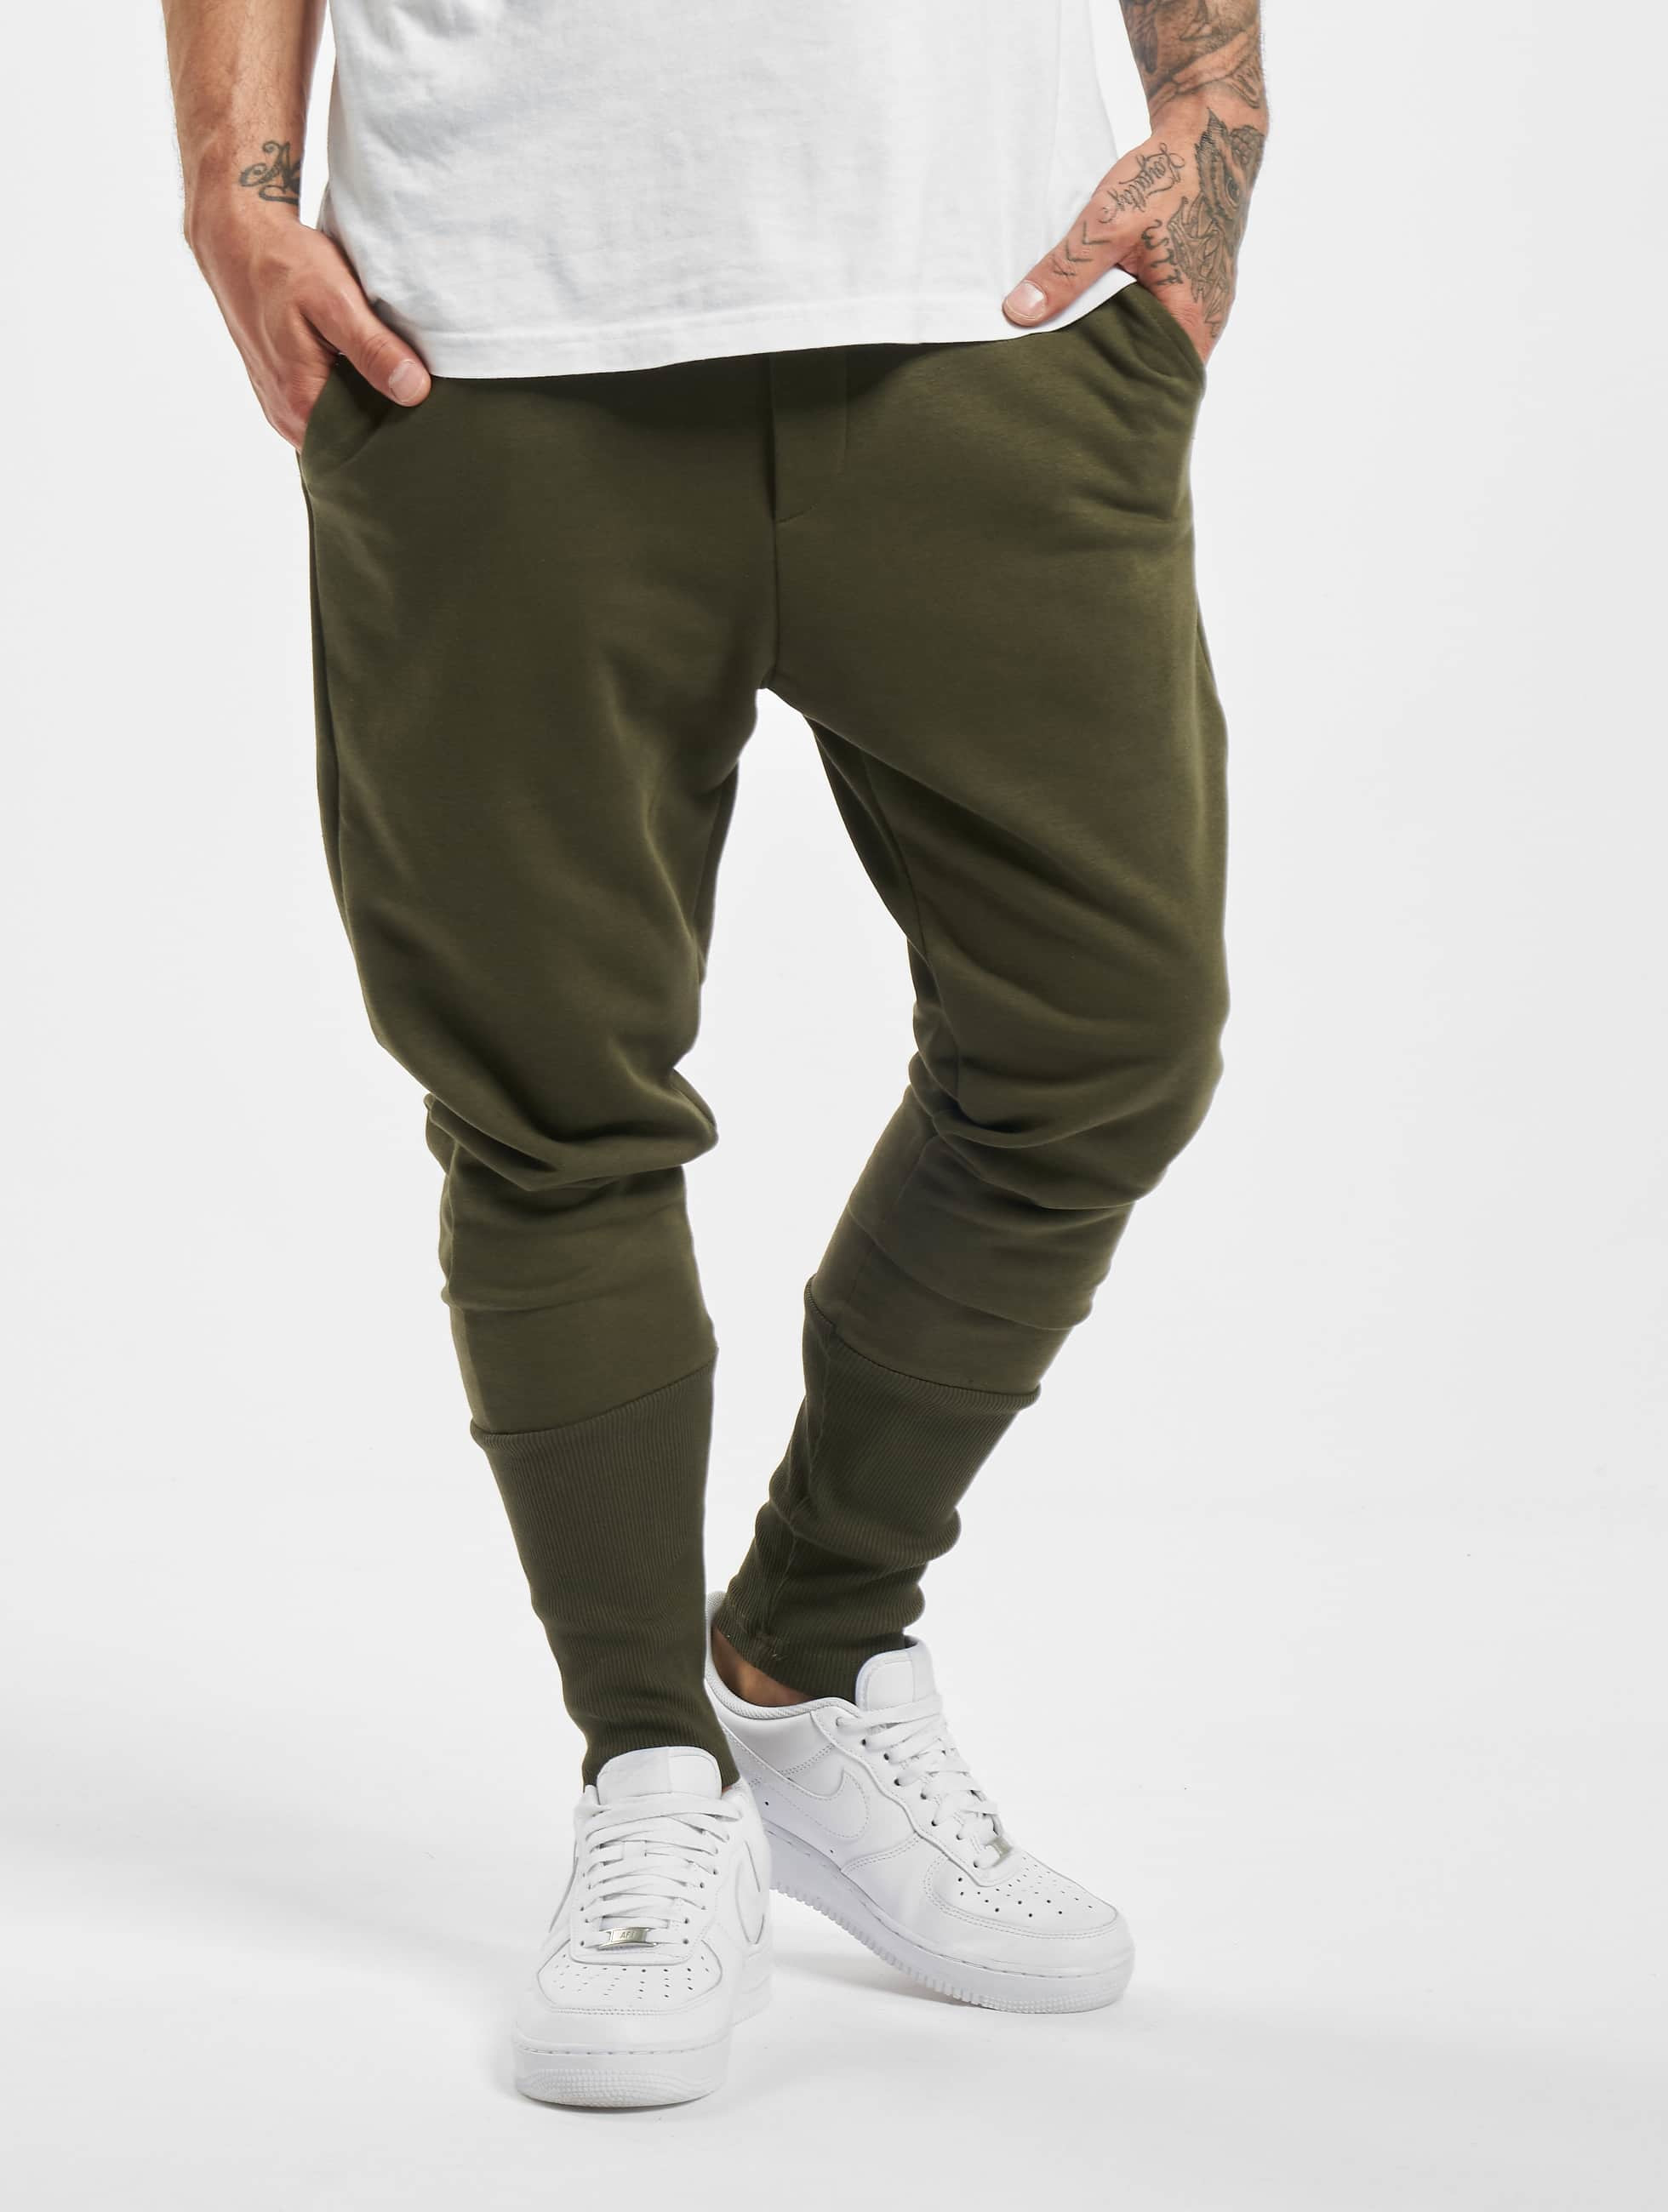 DEF / Sweat Pant Cliff in olive 2XL